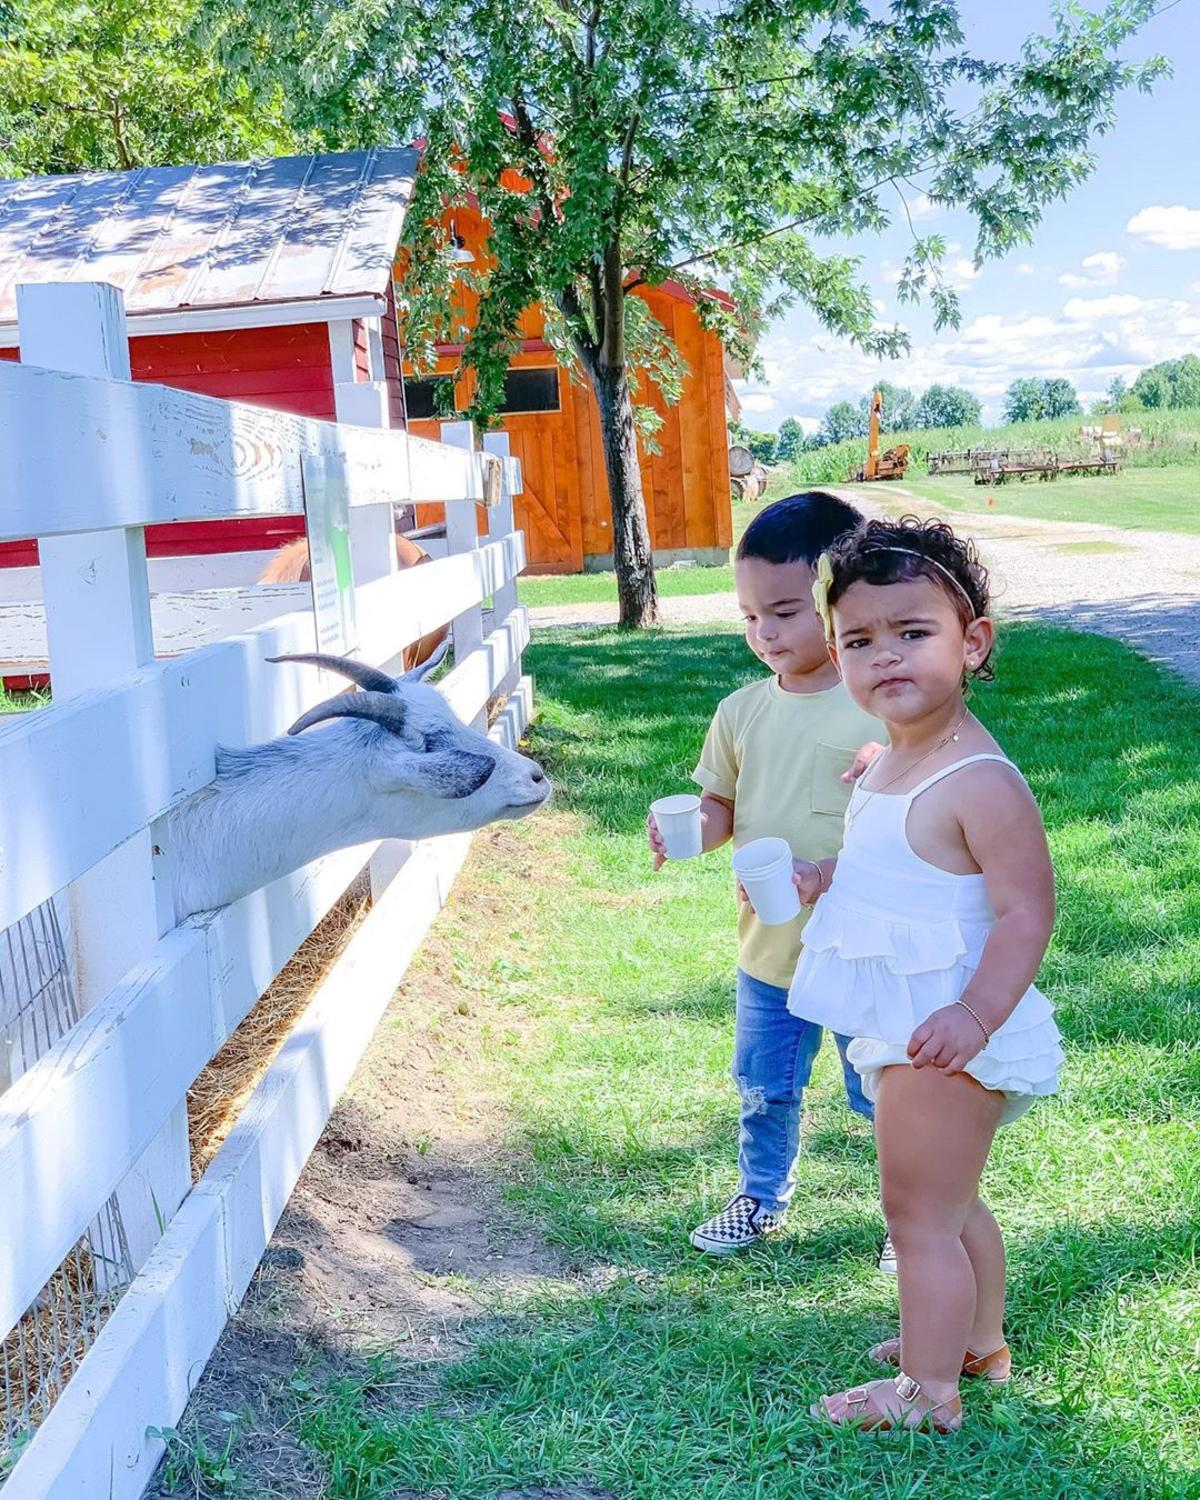 Two young kids feeding a goat at Grandpa Tiny's Farm in Frankenmuth